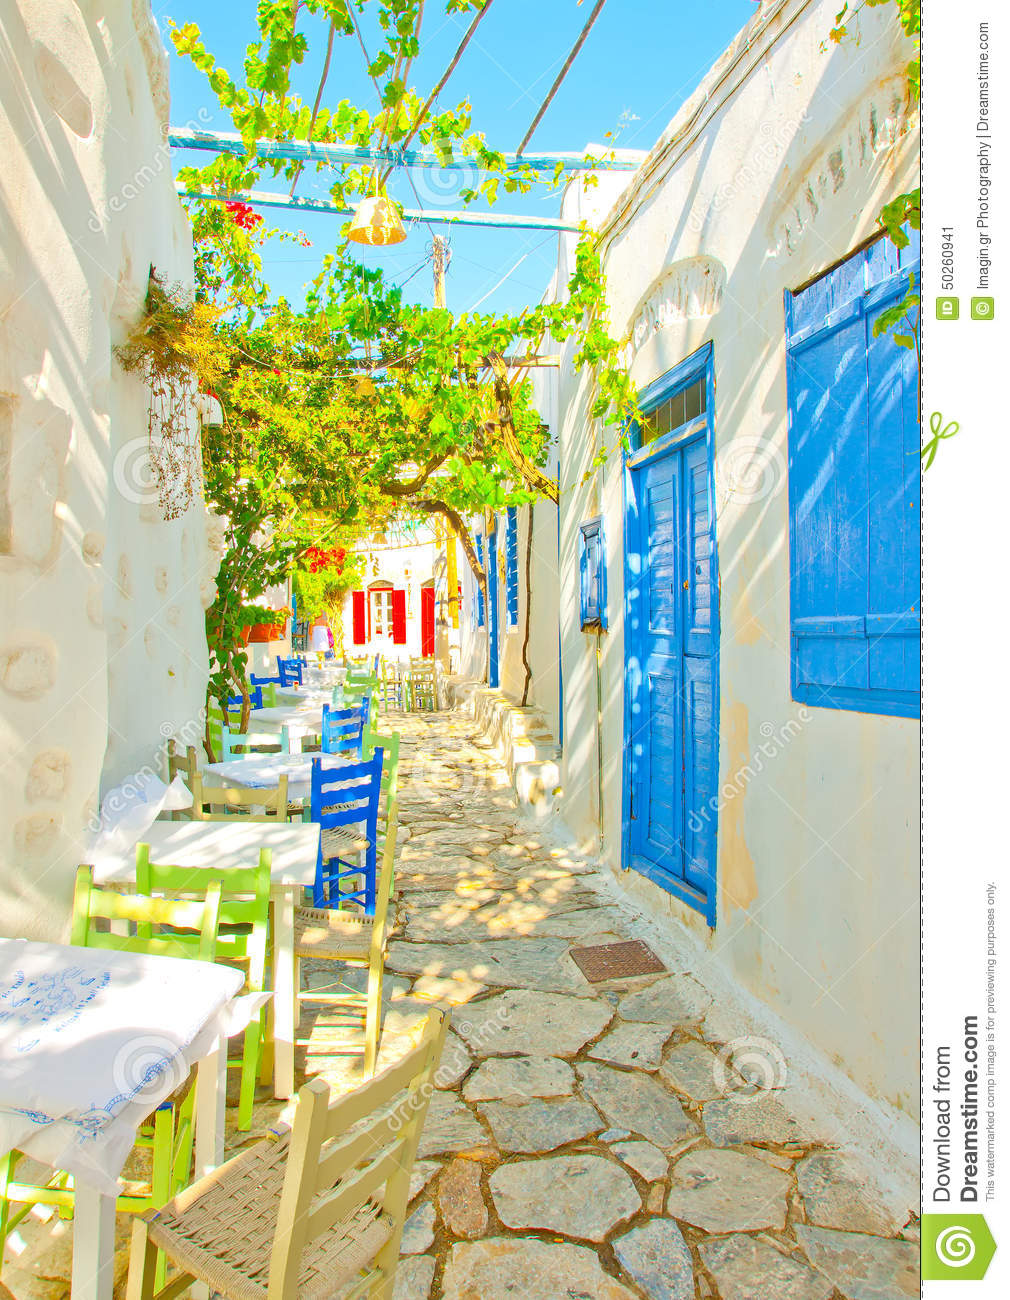 Old beautiful traditional house in chora the capital of amorgos island - Amorgos Beautiful Greece Island Restaurant Road Traditional Blue Old